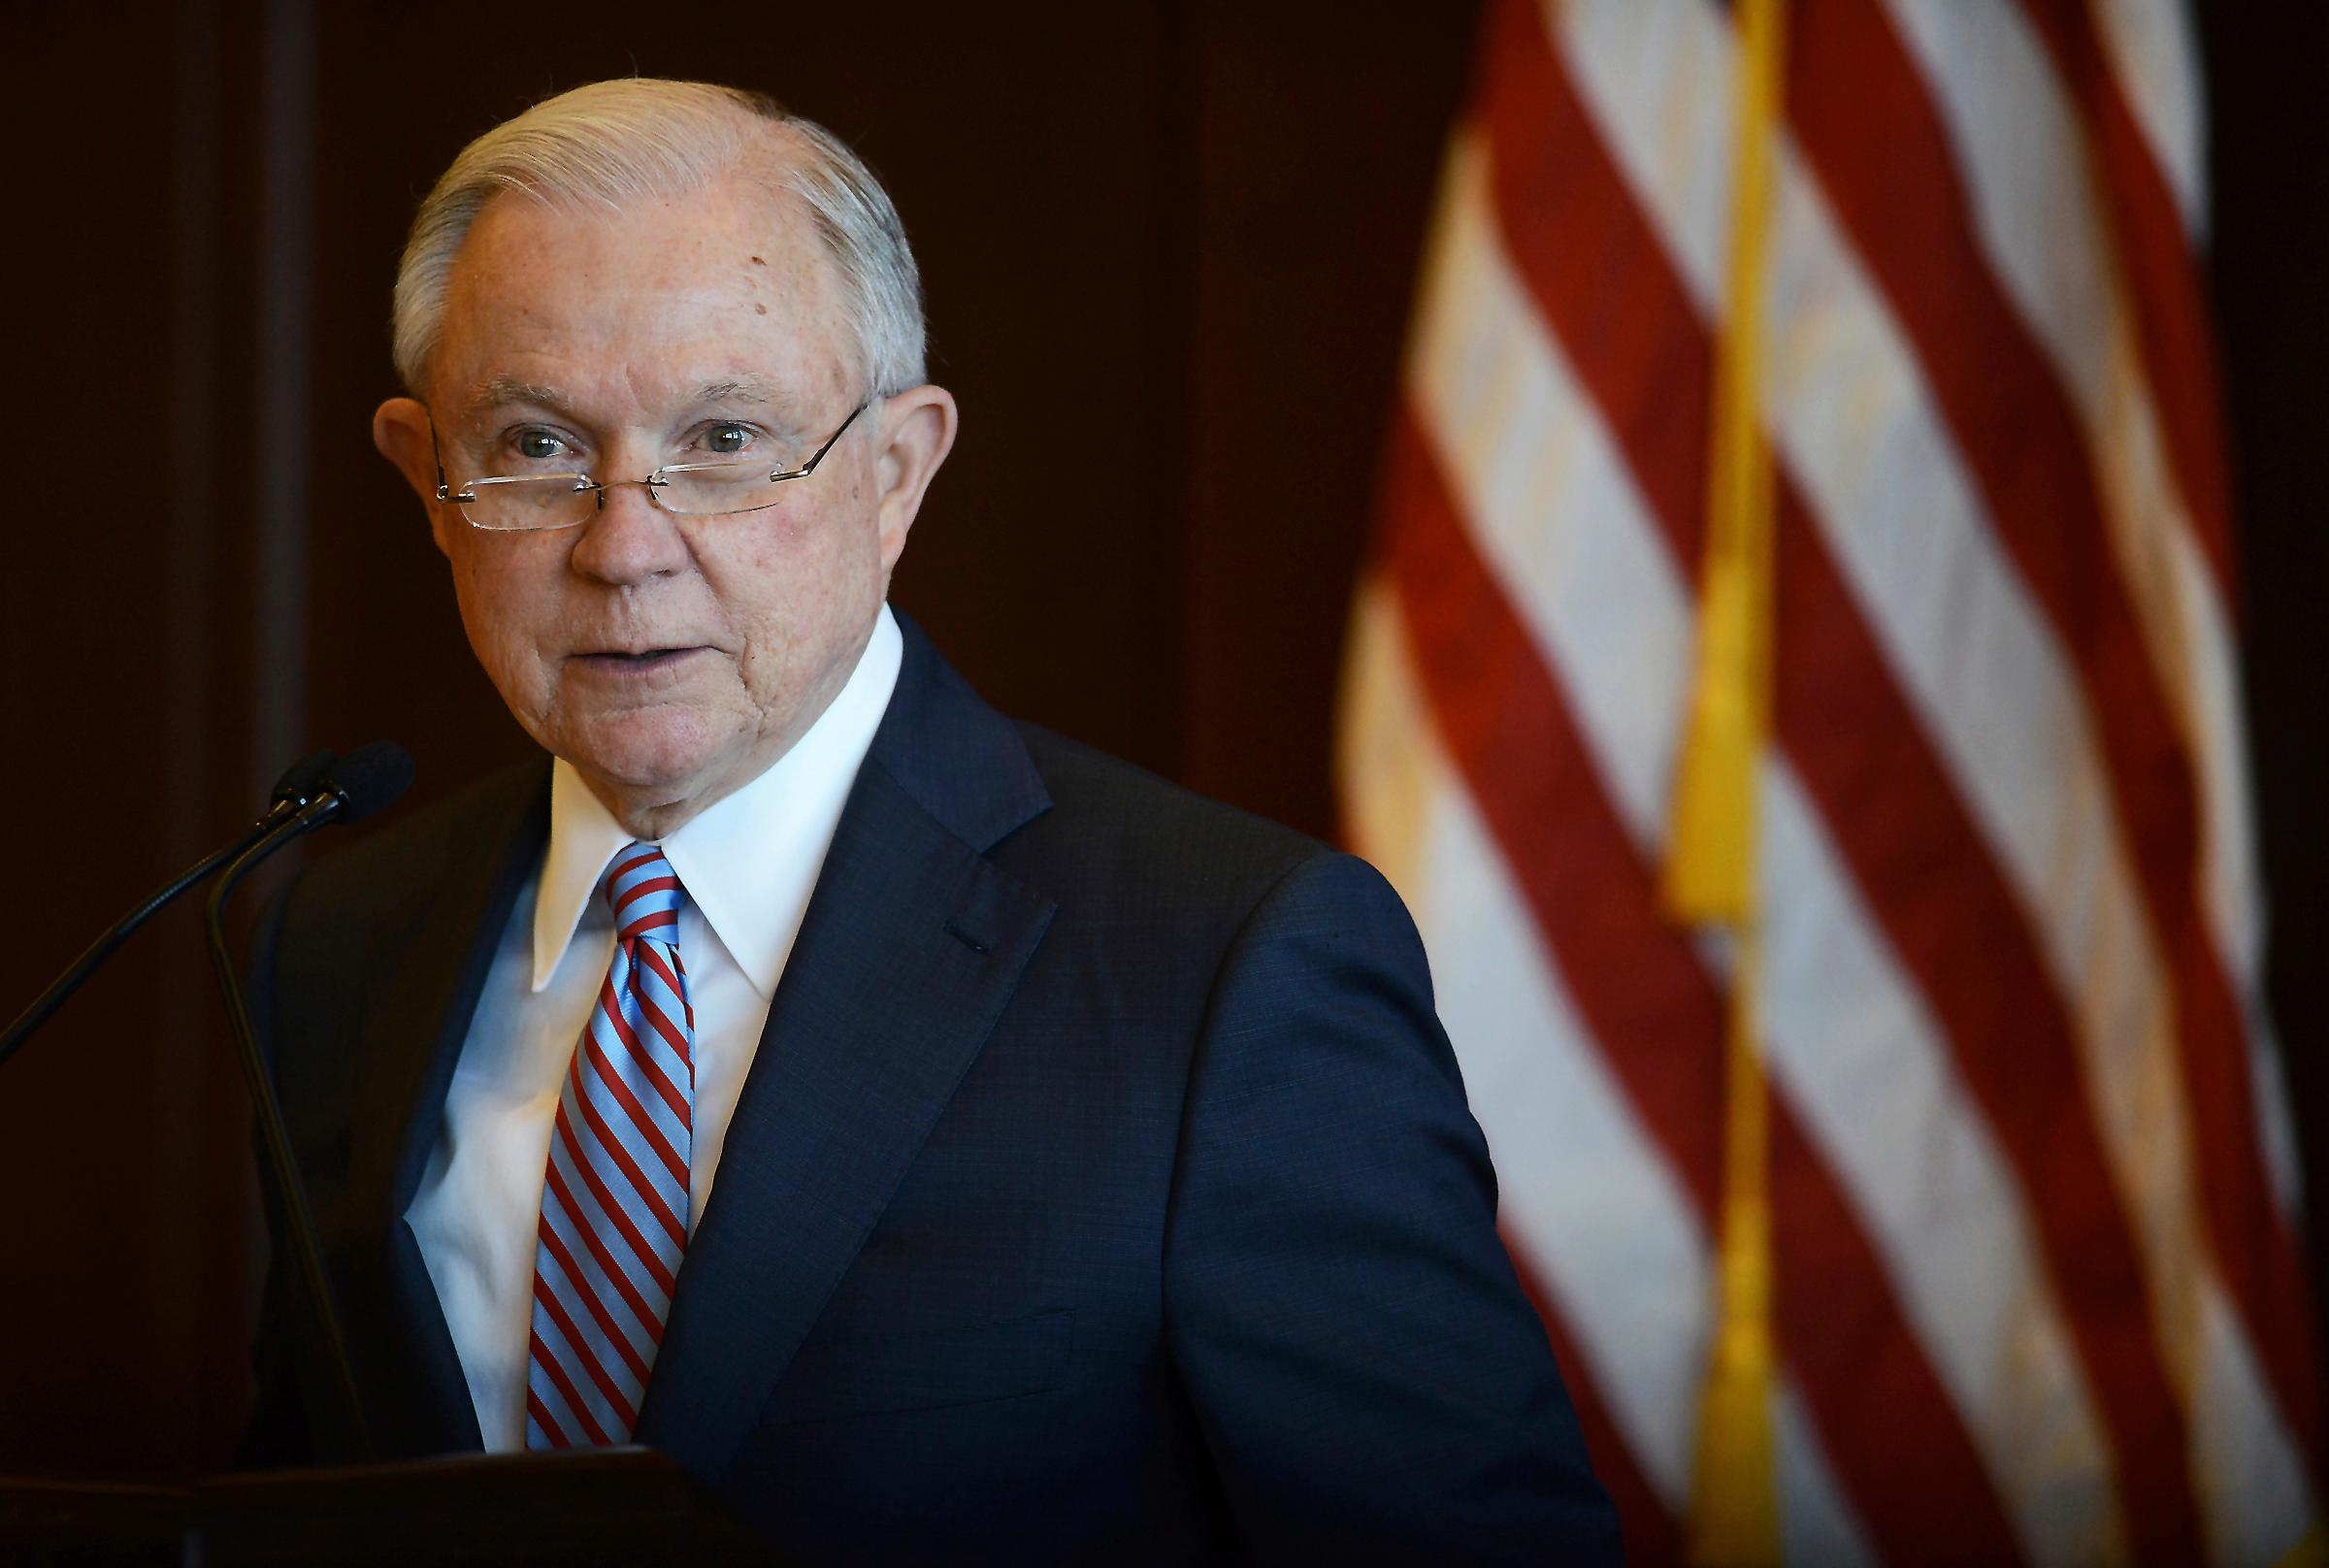 U.S. Attorney General Jeff Sessions speaks on immigration policy and law enforcement actions at Lackawanna College in downtown Scranton, Pa., on Friday, June 15, 2018. (Butch Comegys/The Times-Tribune via AP)